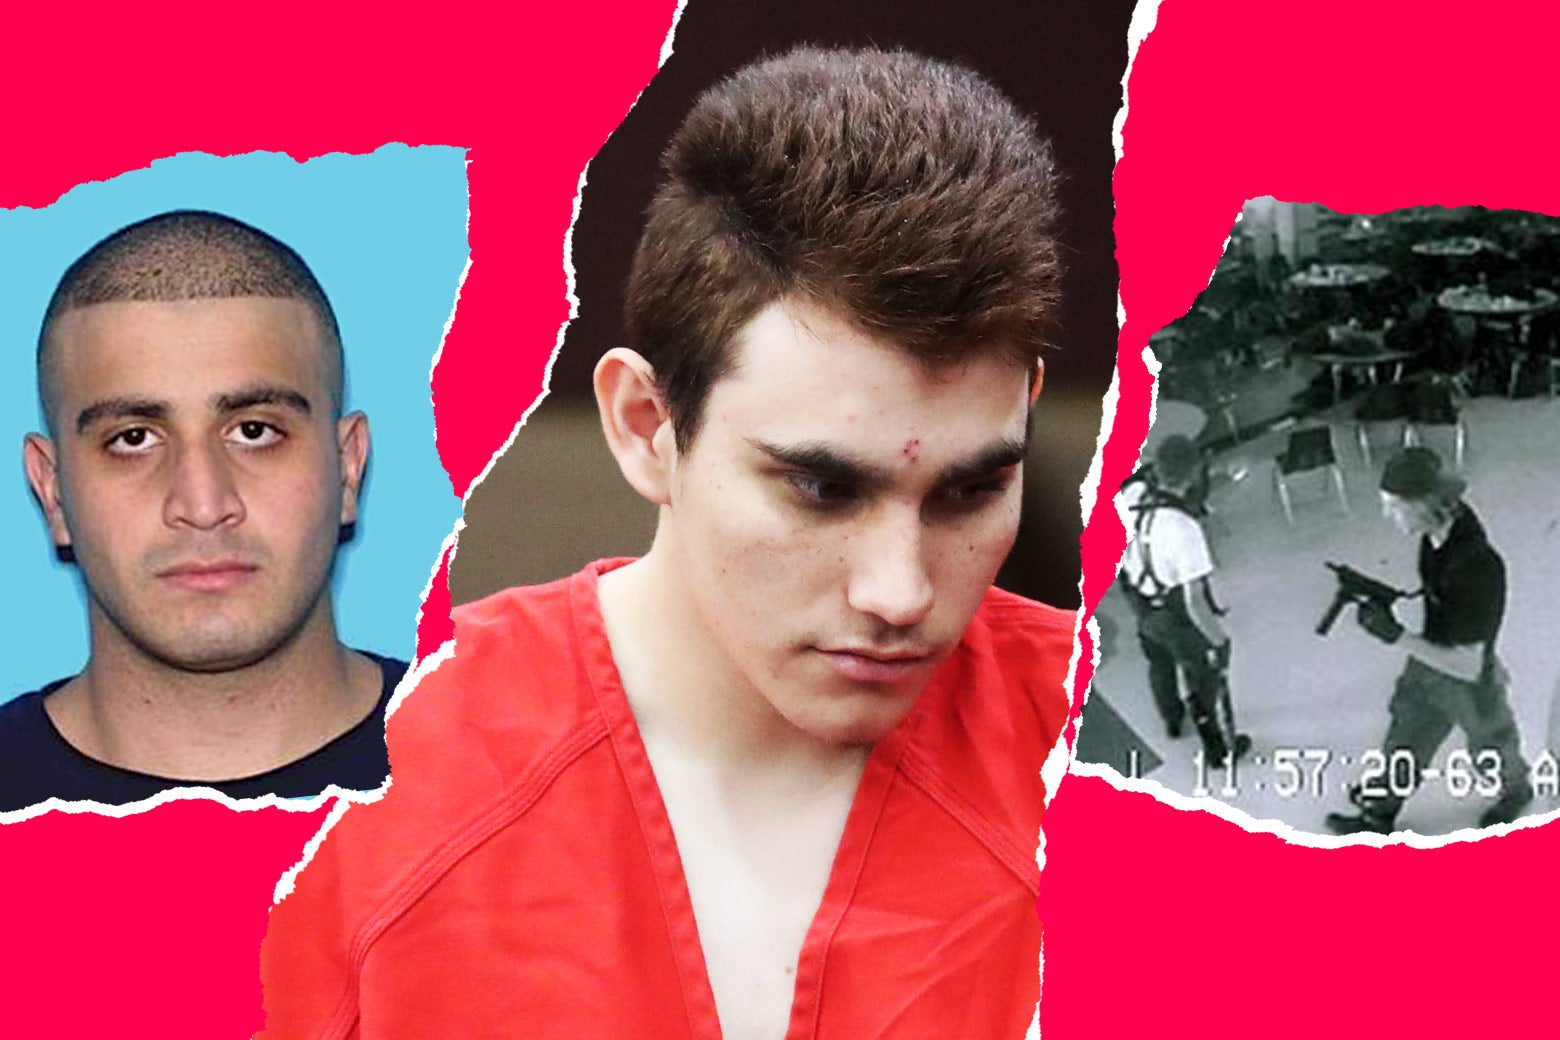 Photo illustration: Omar Mateen, Nikolas Cruz, and Eric Harris and Dylan Klebold.